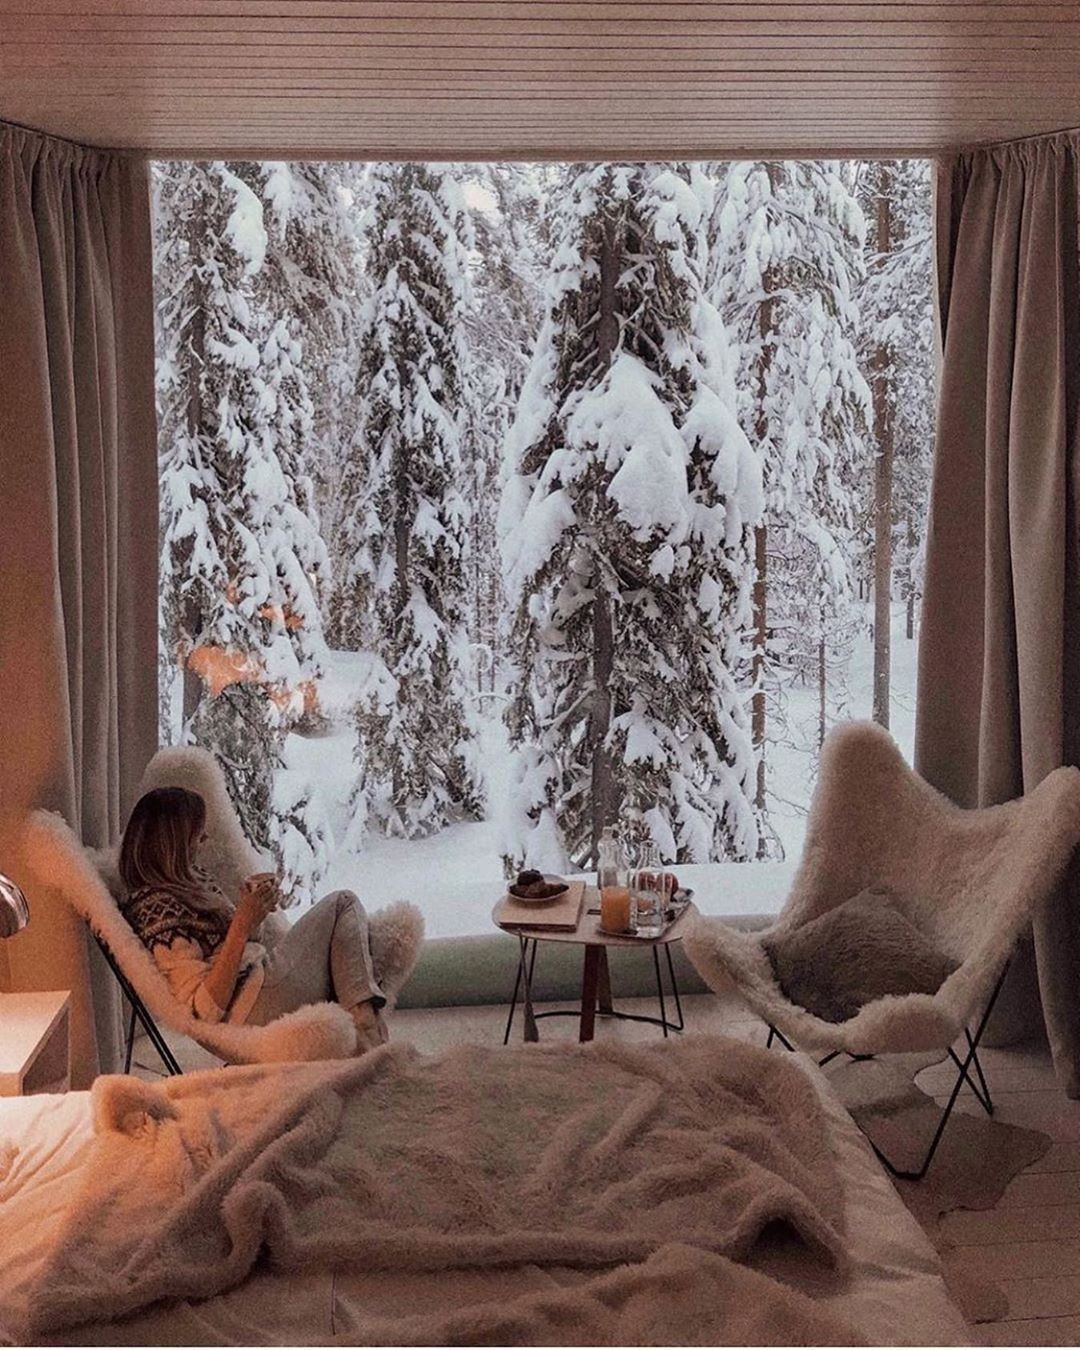 """Gooseberry Intimates on Instagram: """"Our kind of paradise ❄ cannot wait for our upcoming snowy getaway with the family ☃️ 📷 @belaya.lena #wintermood"""""""